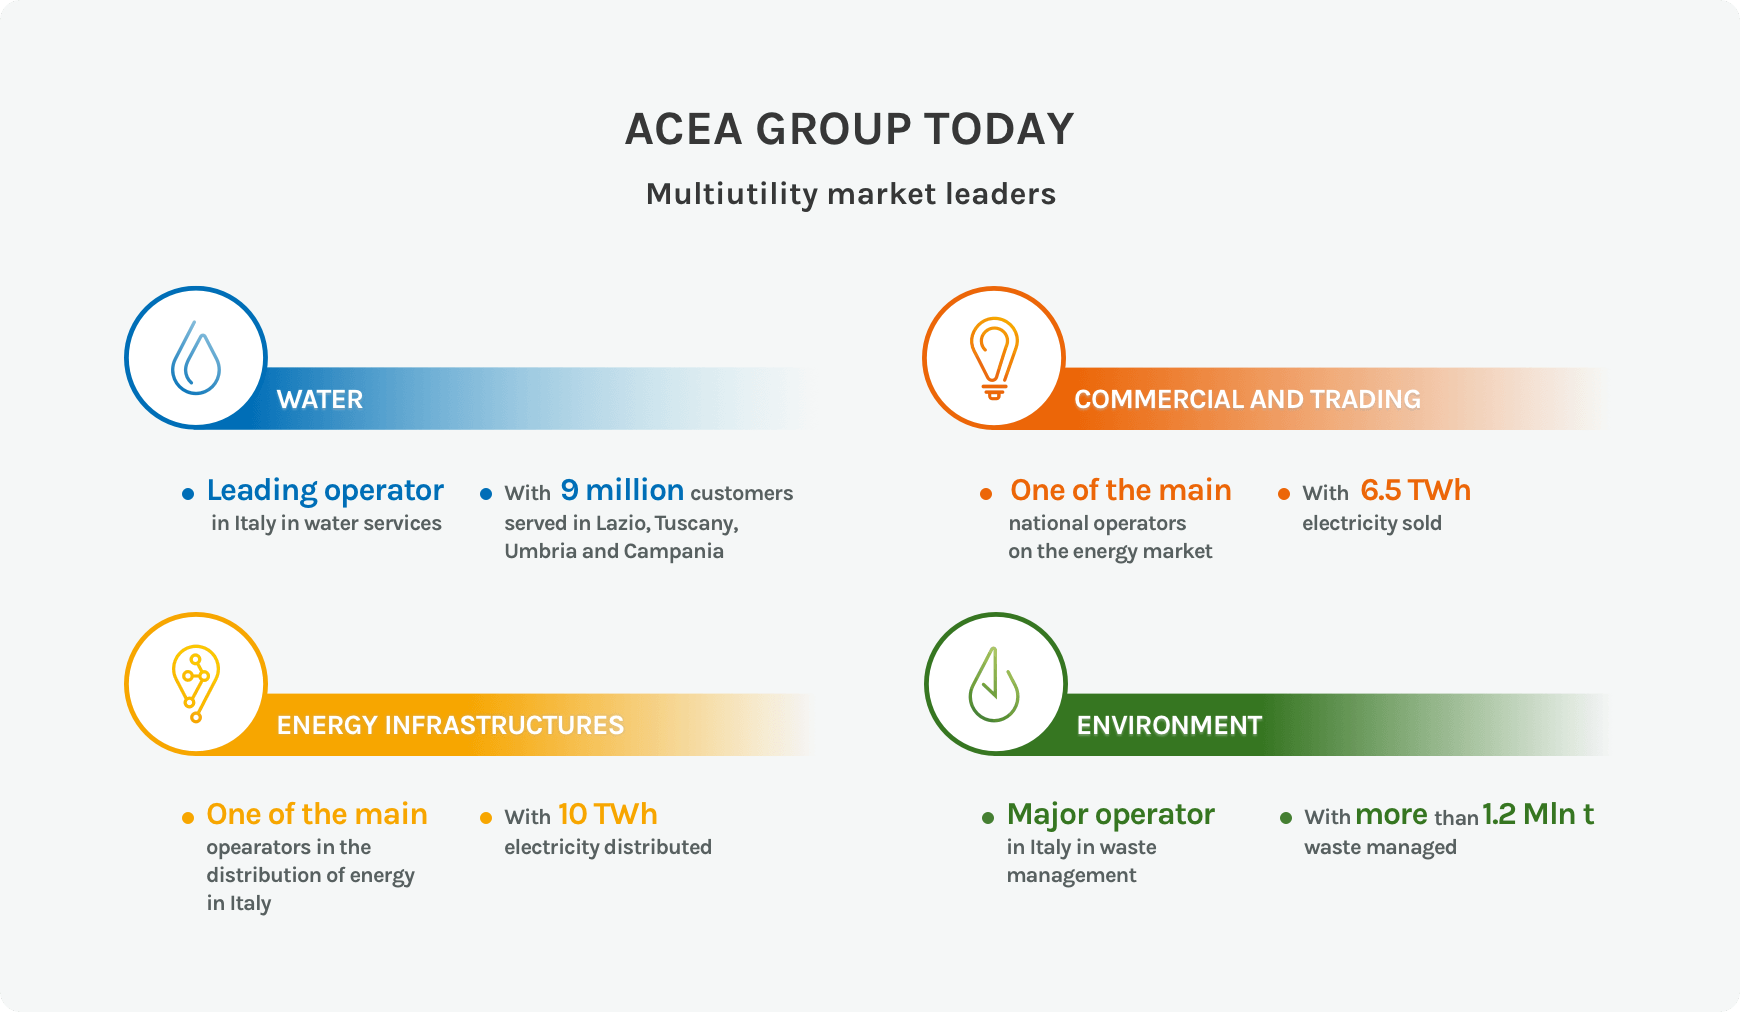 Acea group today